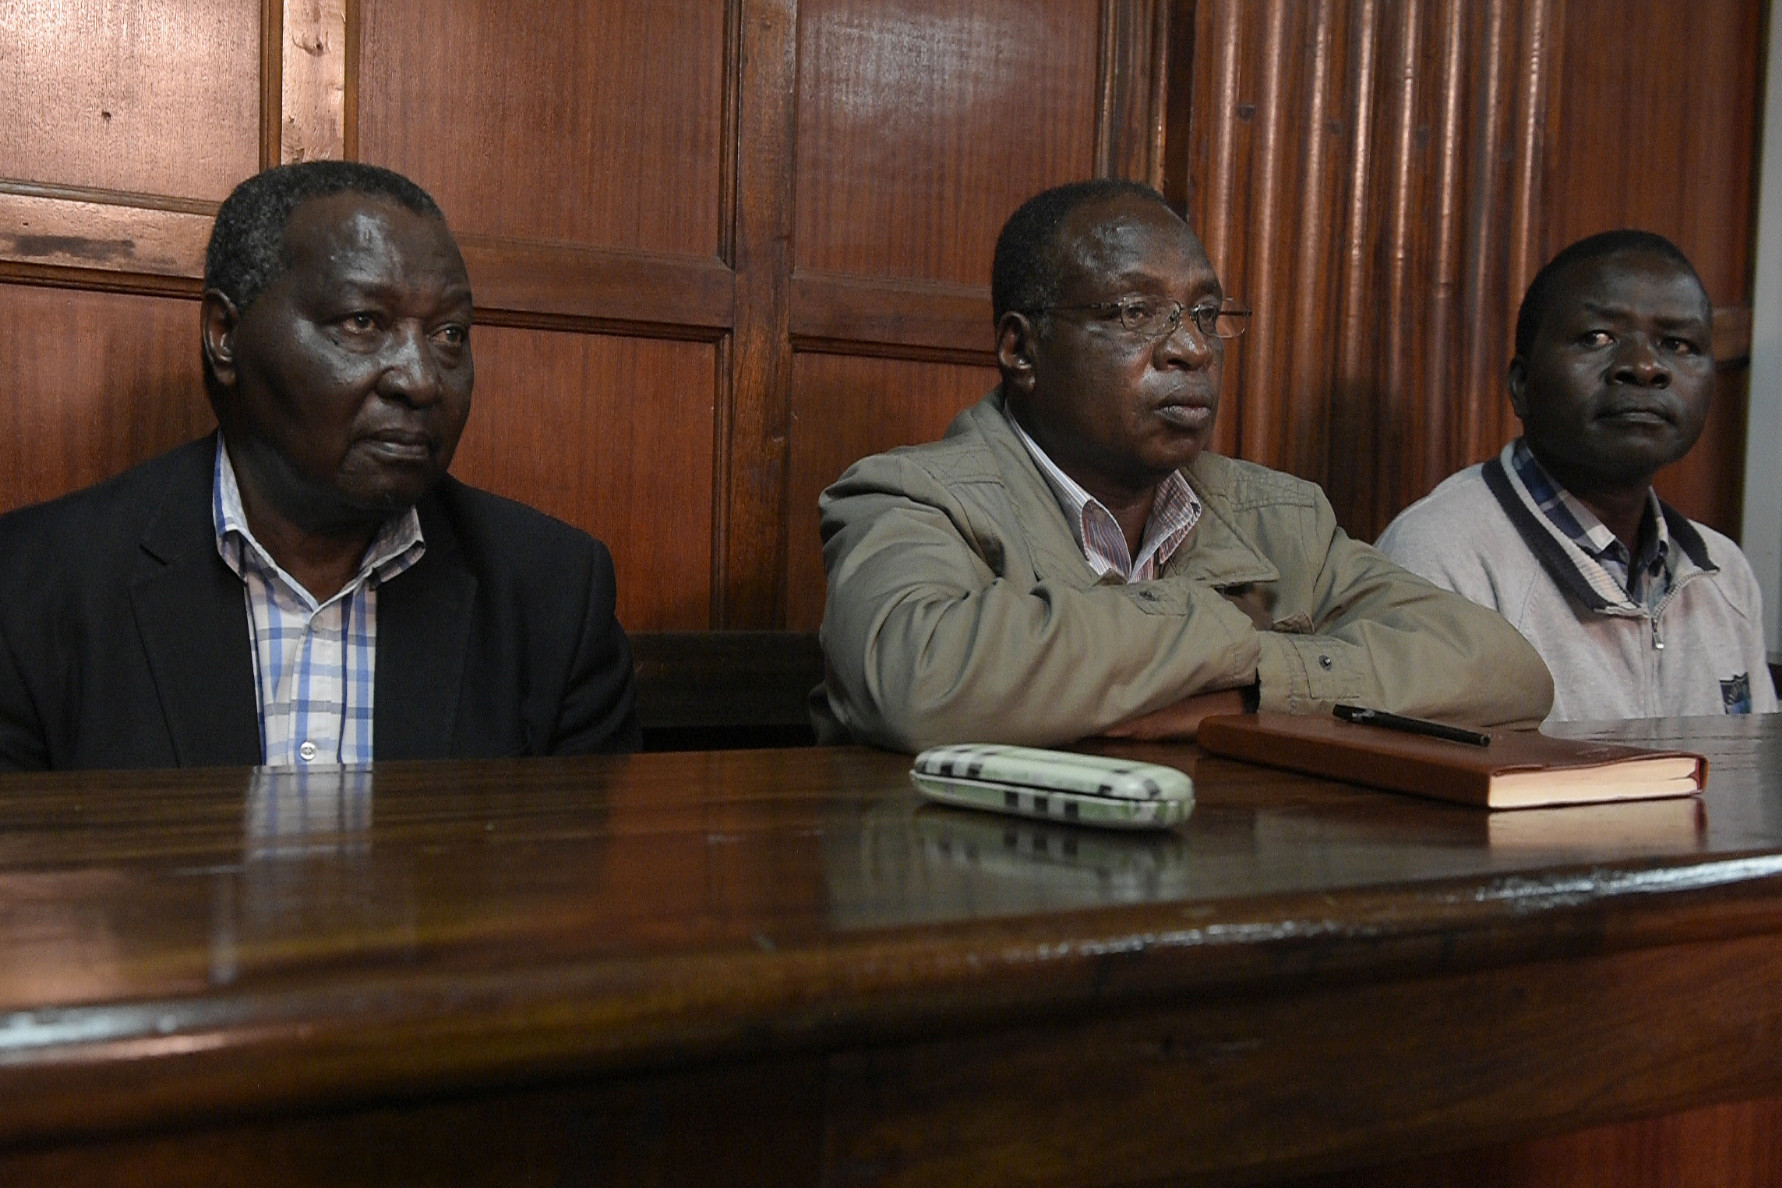 Kenyan National Olympic Committee secretary general steps down over corruption cases linked to Rio 2016